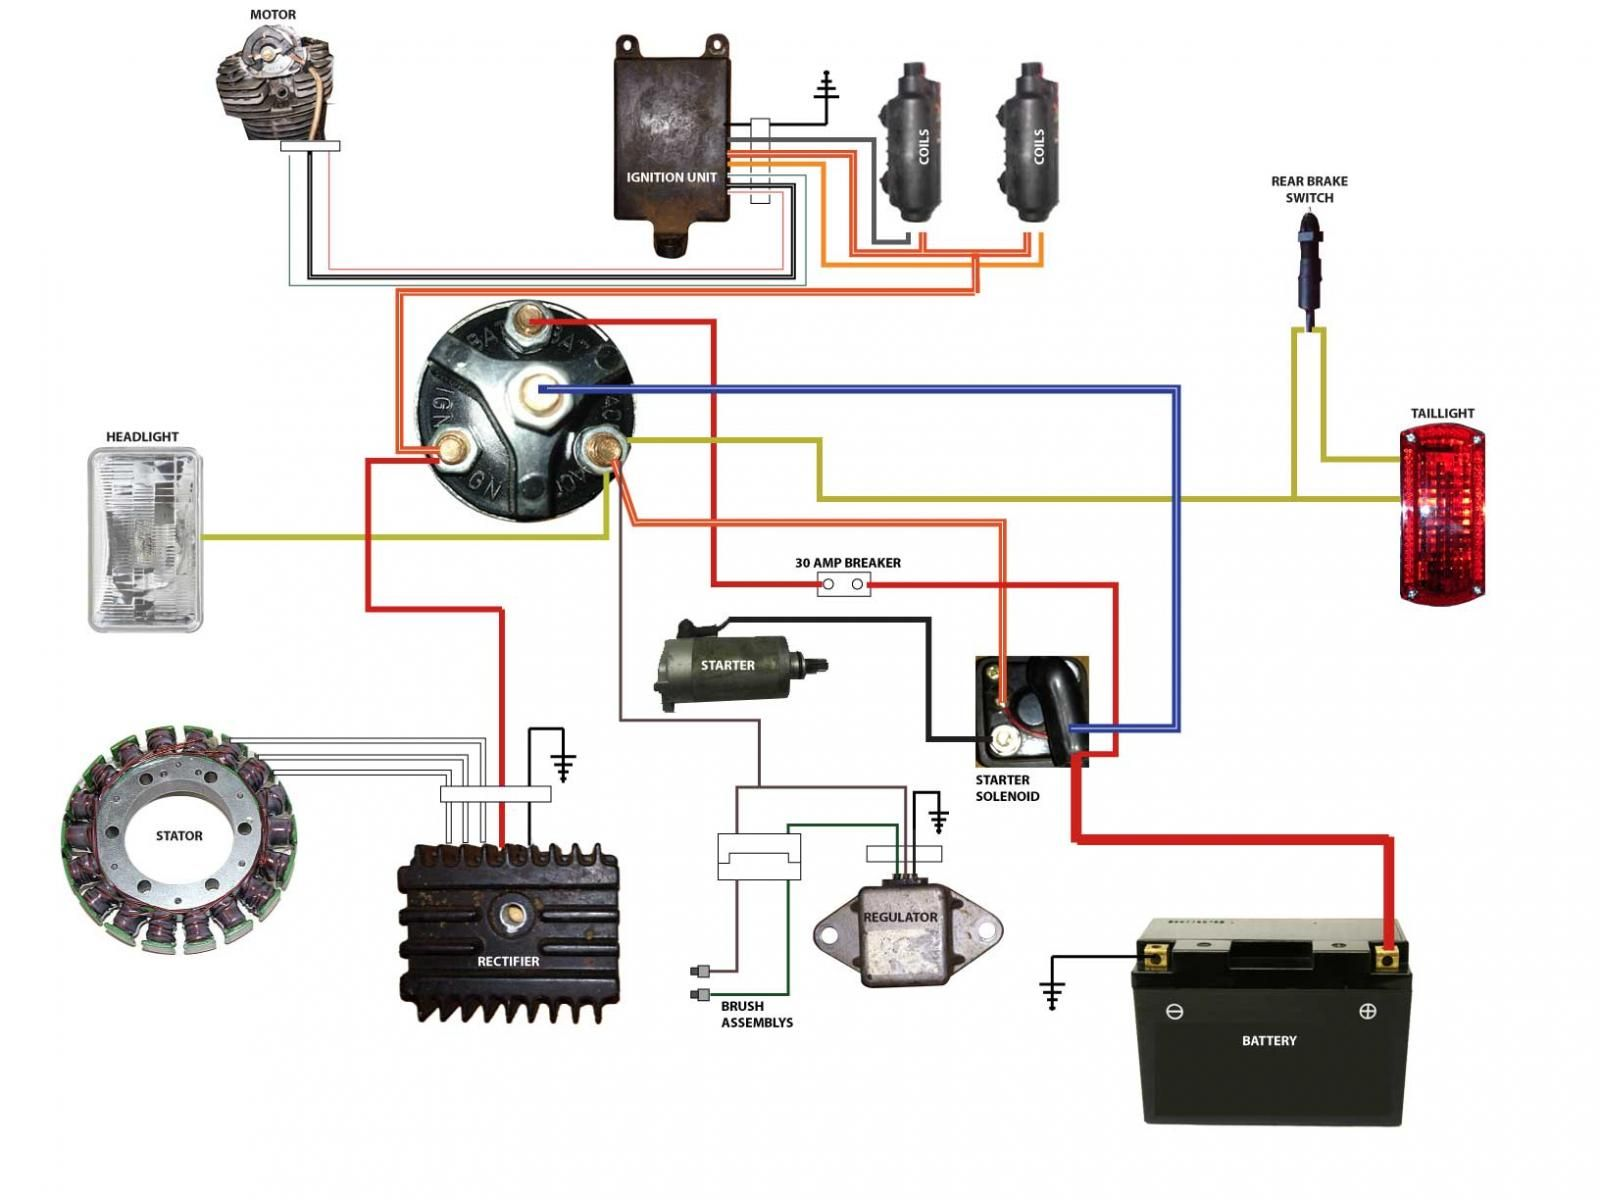 d72b6b9978ded4378b16620a38821410 simplified wiring diagram for xs400 cafe motorcycle wiring  at gsmportal.co